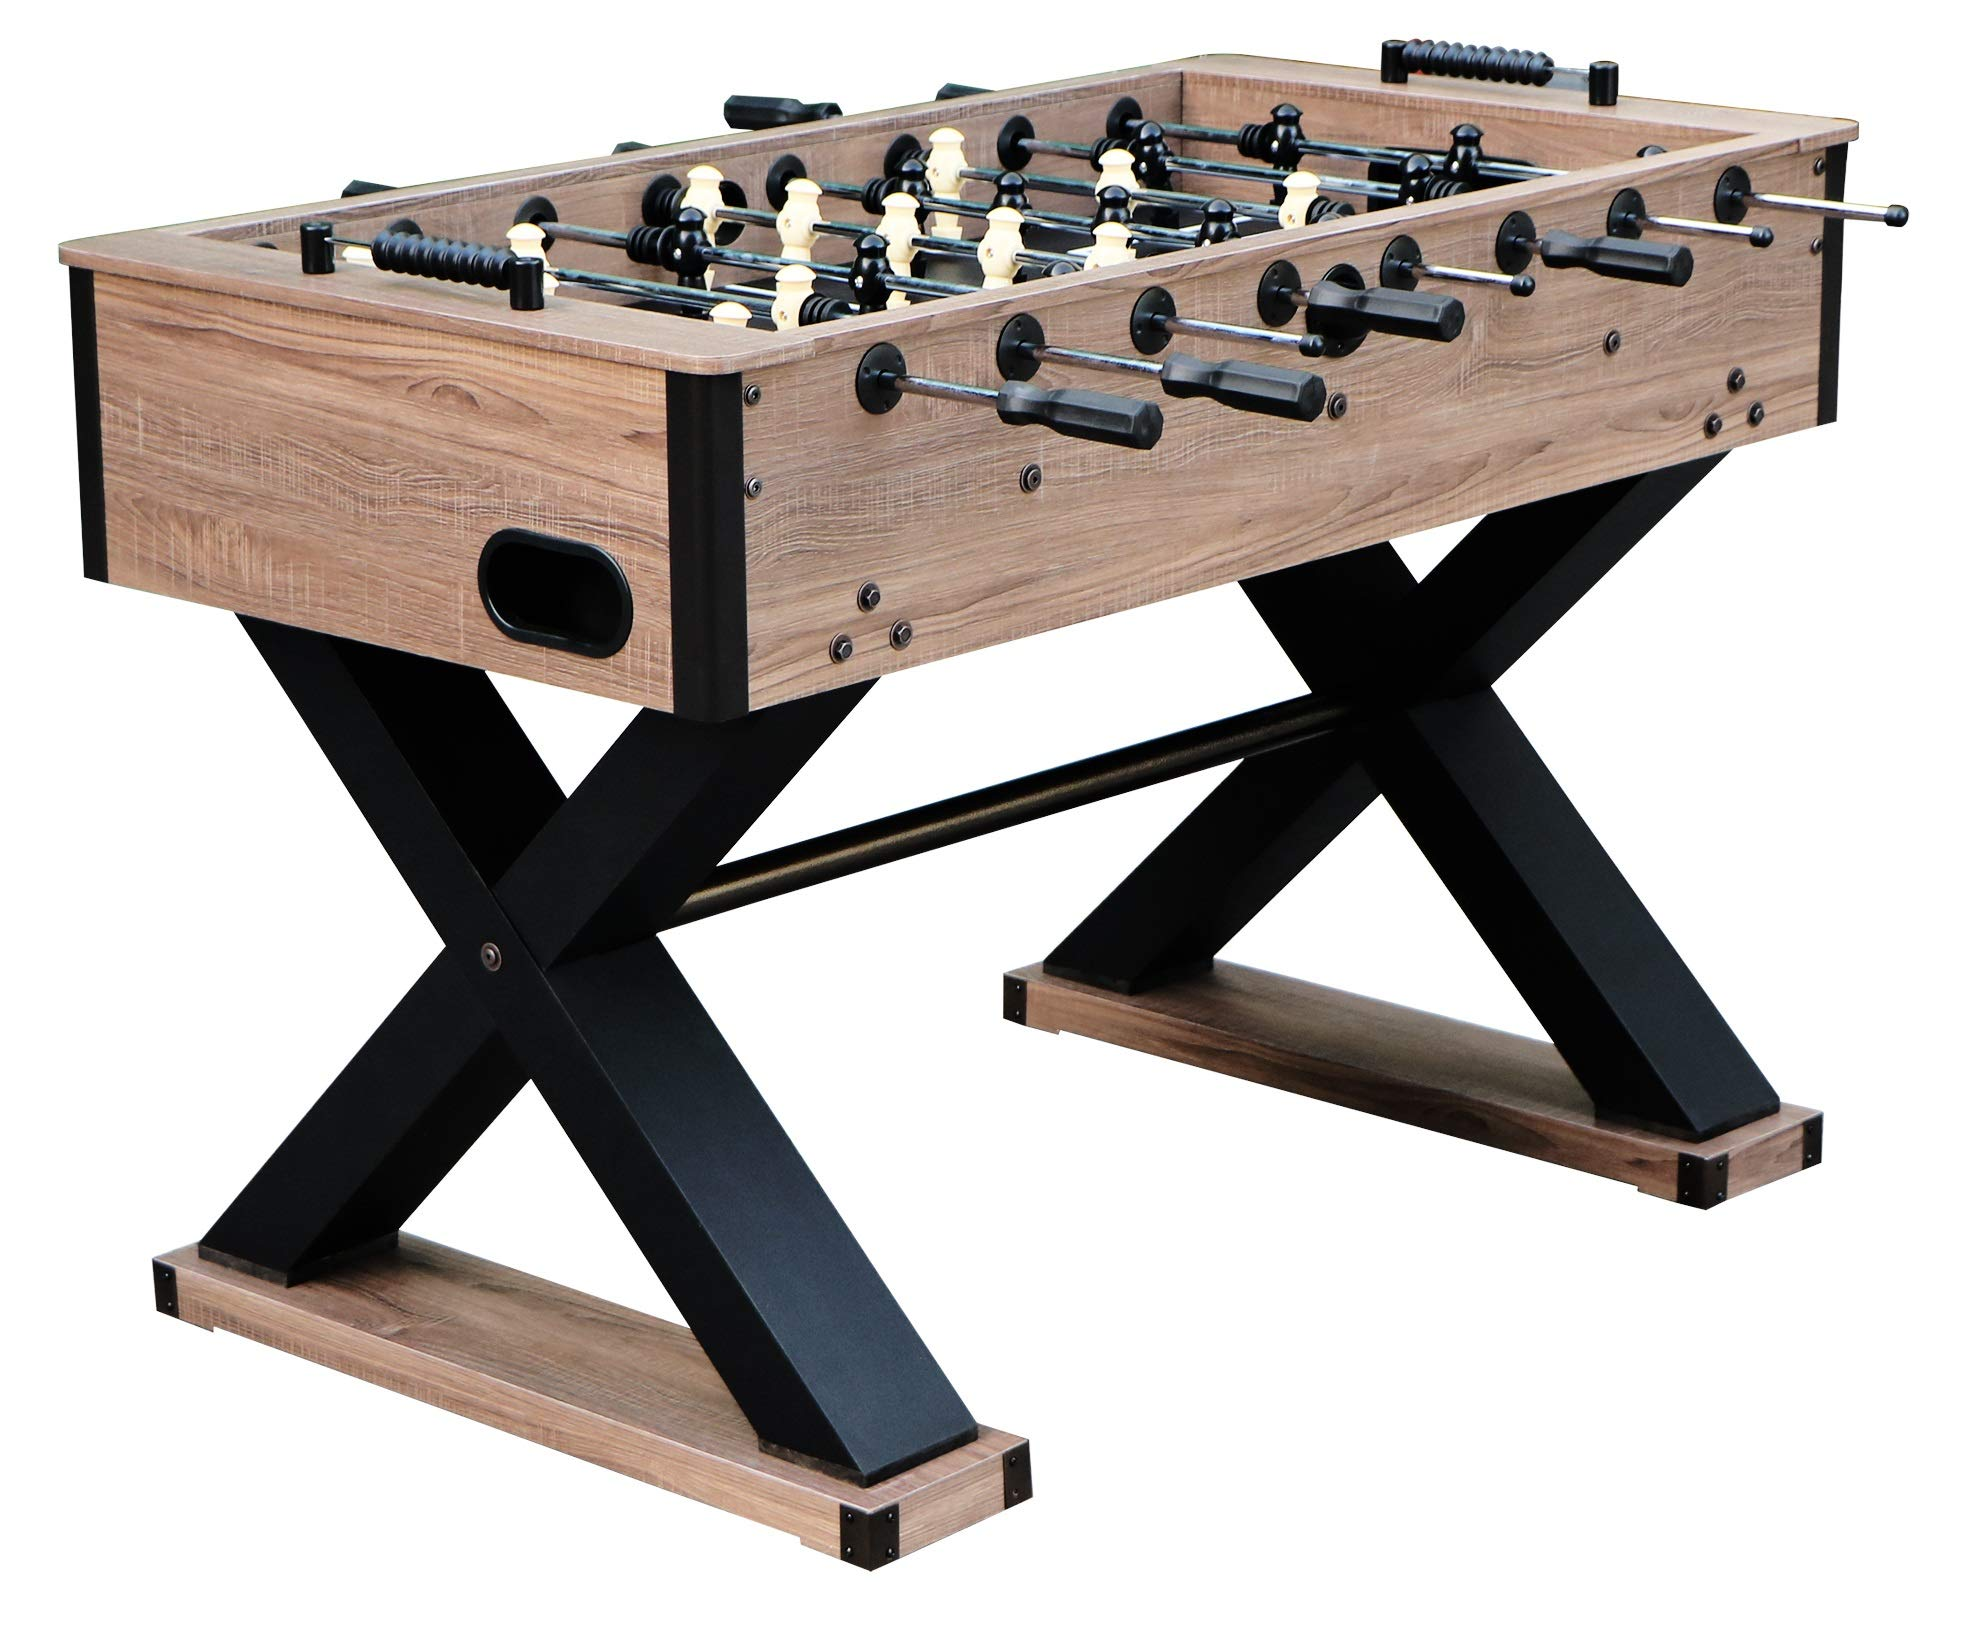 Hathaway Excalibur 54-in Foosball Table, Driftwood by Hathaway